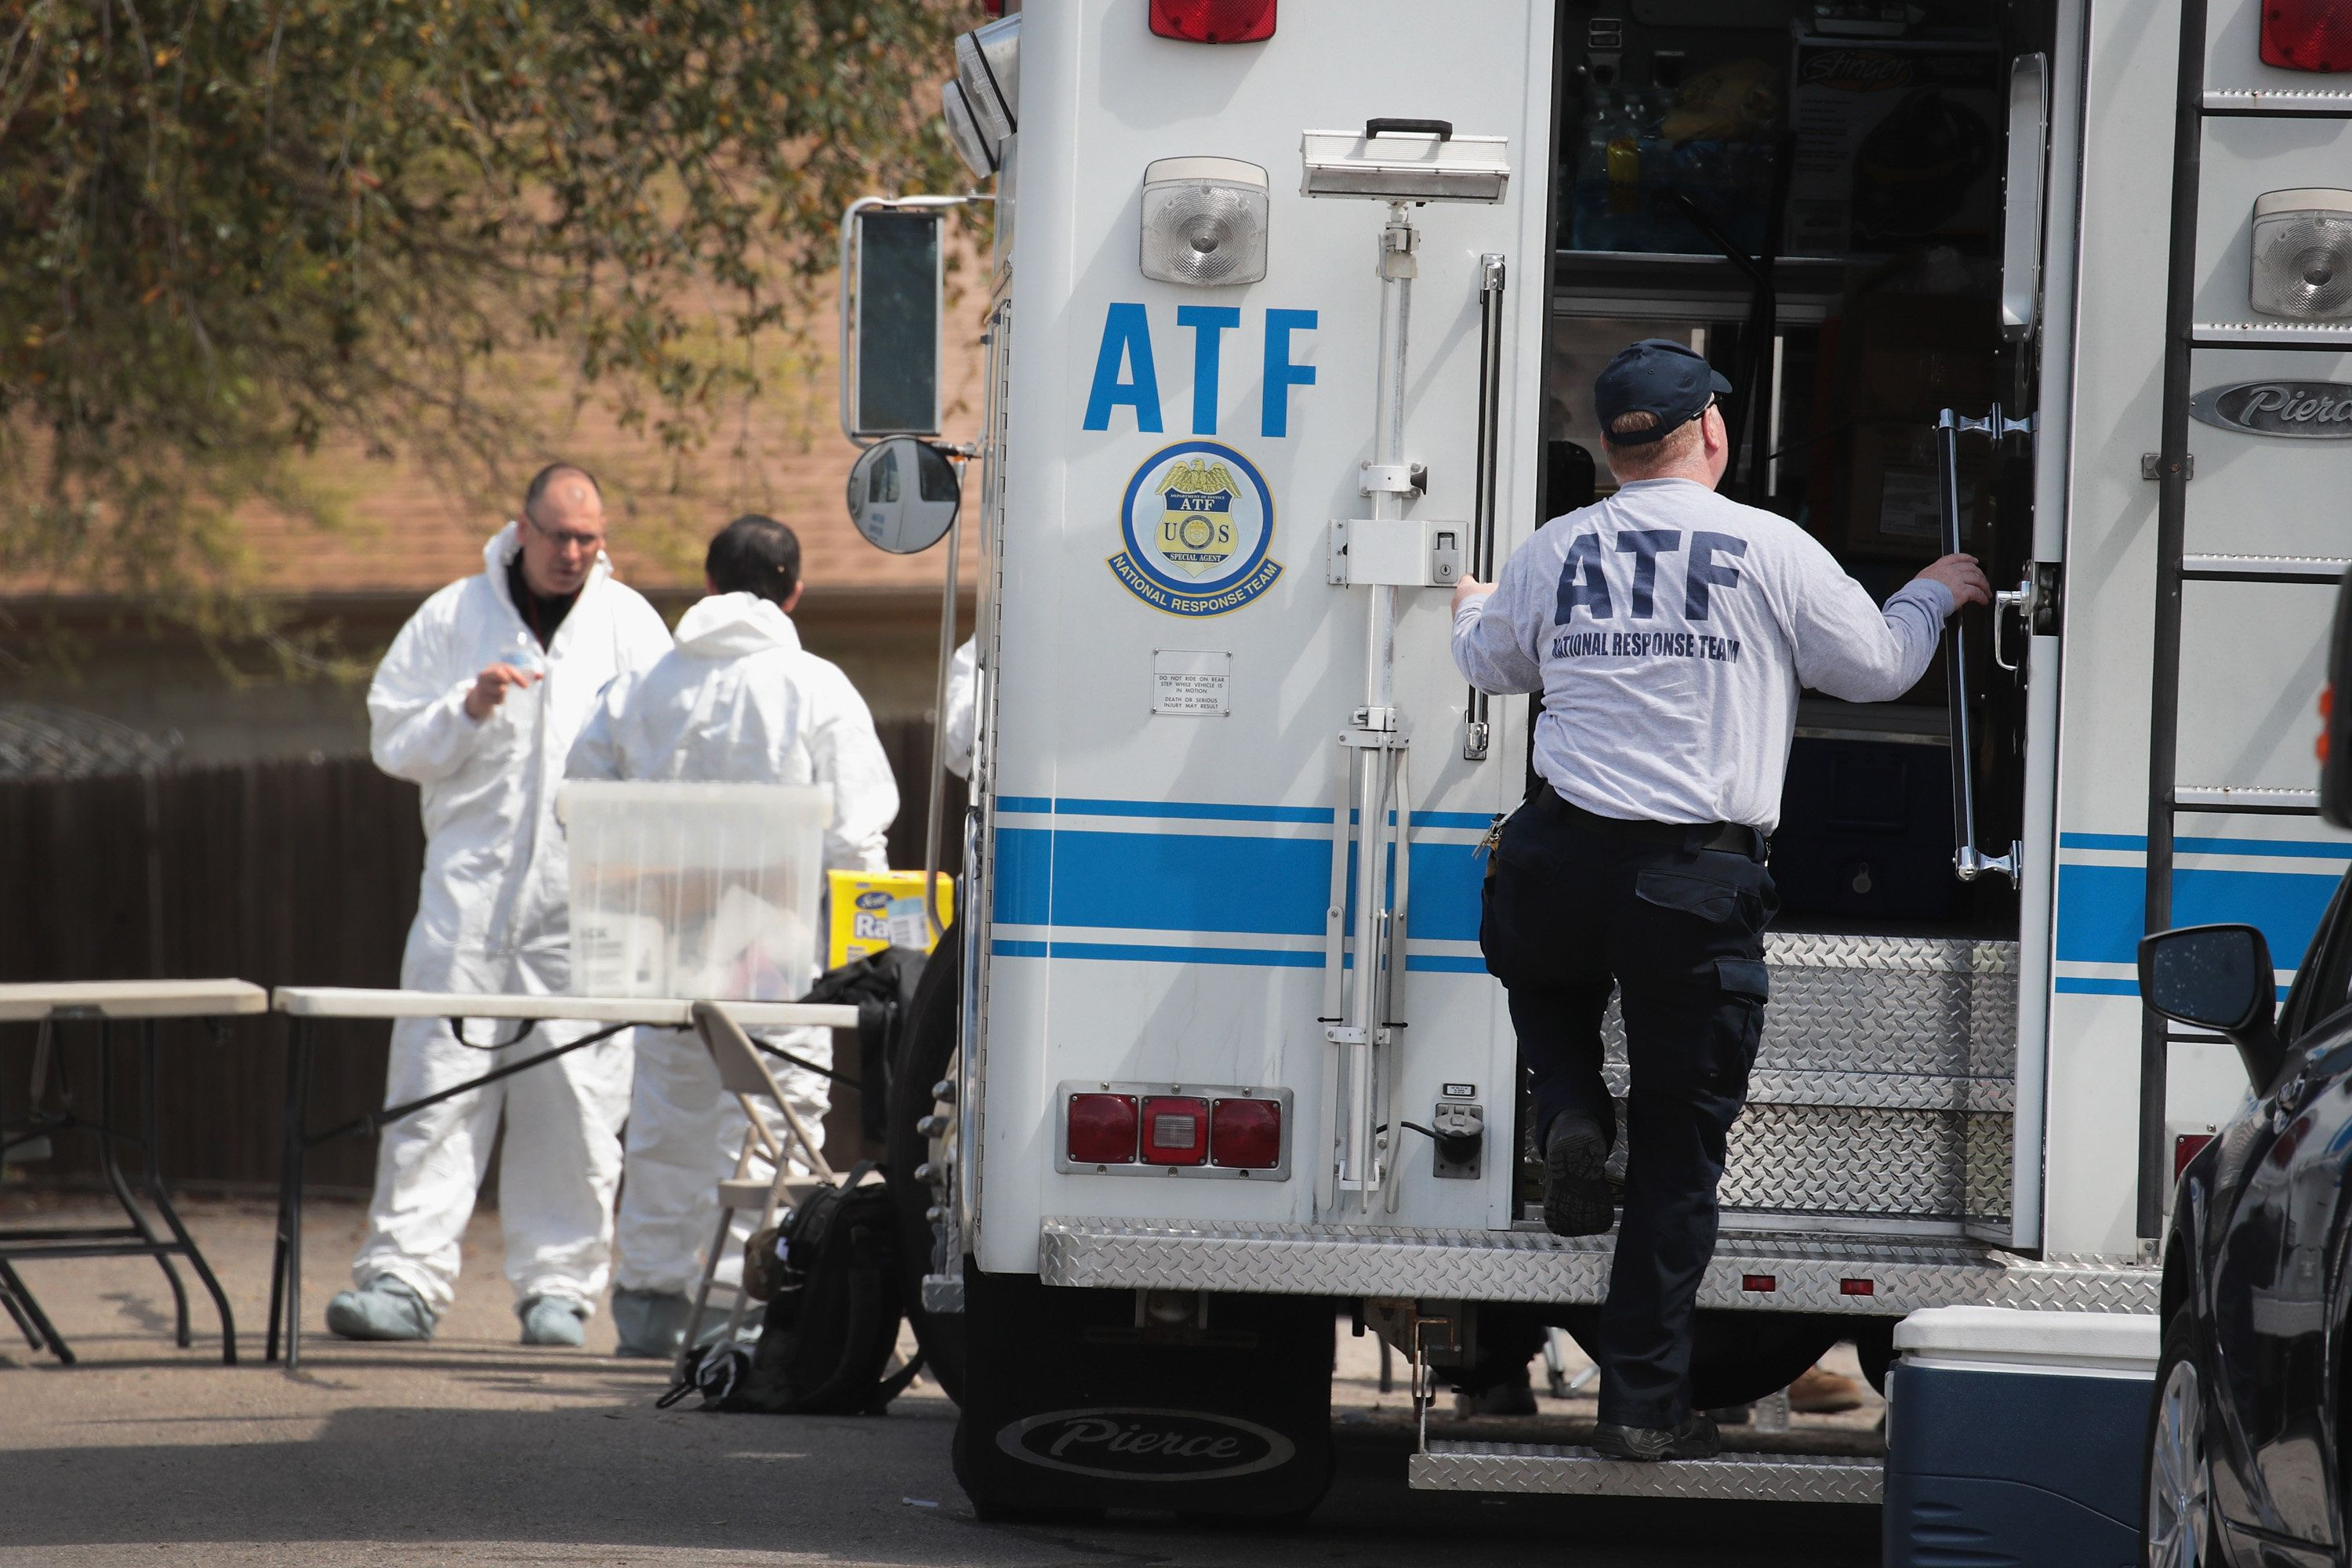 PFLUGERVILLE, TX - MARCH 22:  Law enforcement officials continue their investigation at the home of Mark Anthony Conditt March 22, 2018 in Pflugerville, Texas. Conditt, the 23-year-old suspect in the Austin package bombings, blew himself up inside his SUV as police tried to take him into custody yesterday in the nearby city of Round Rock. A massive search for the bomber had been underway by local and federal law enforcement officials in Austin and the surrounding area after several package bombs had detonated in recent weeks, killing two people and injuring several others.  (Photo by Scott Olson/Getty Images)